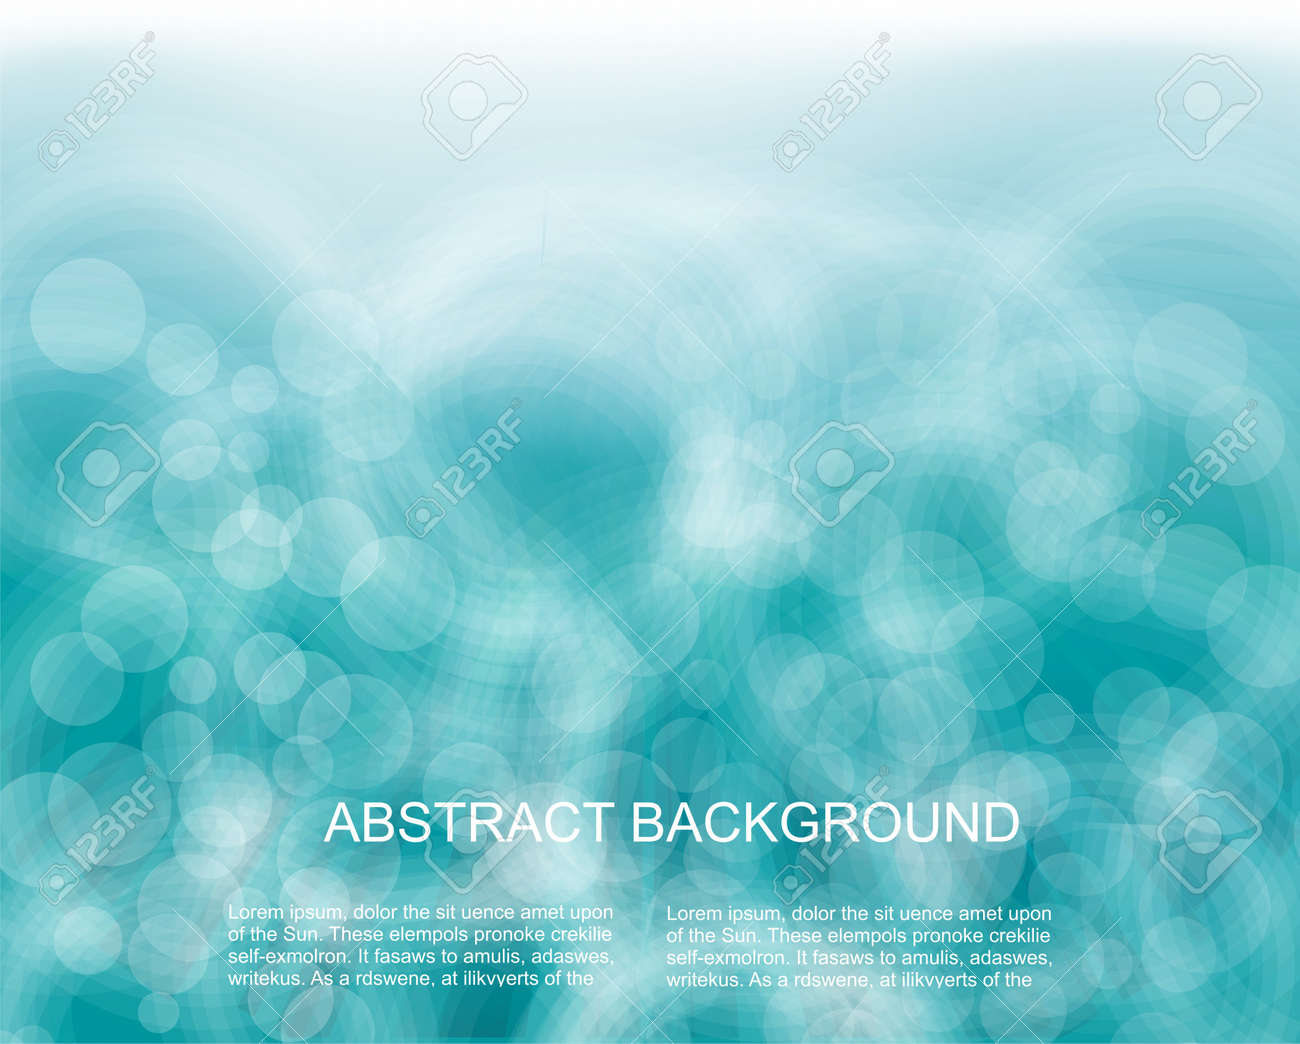 vector soft colored abstract background web and mobile interface